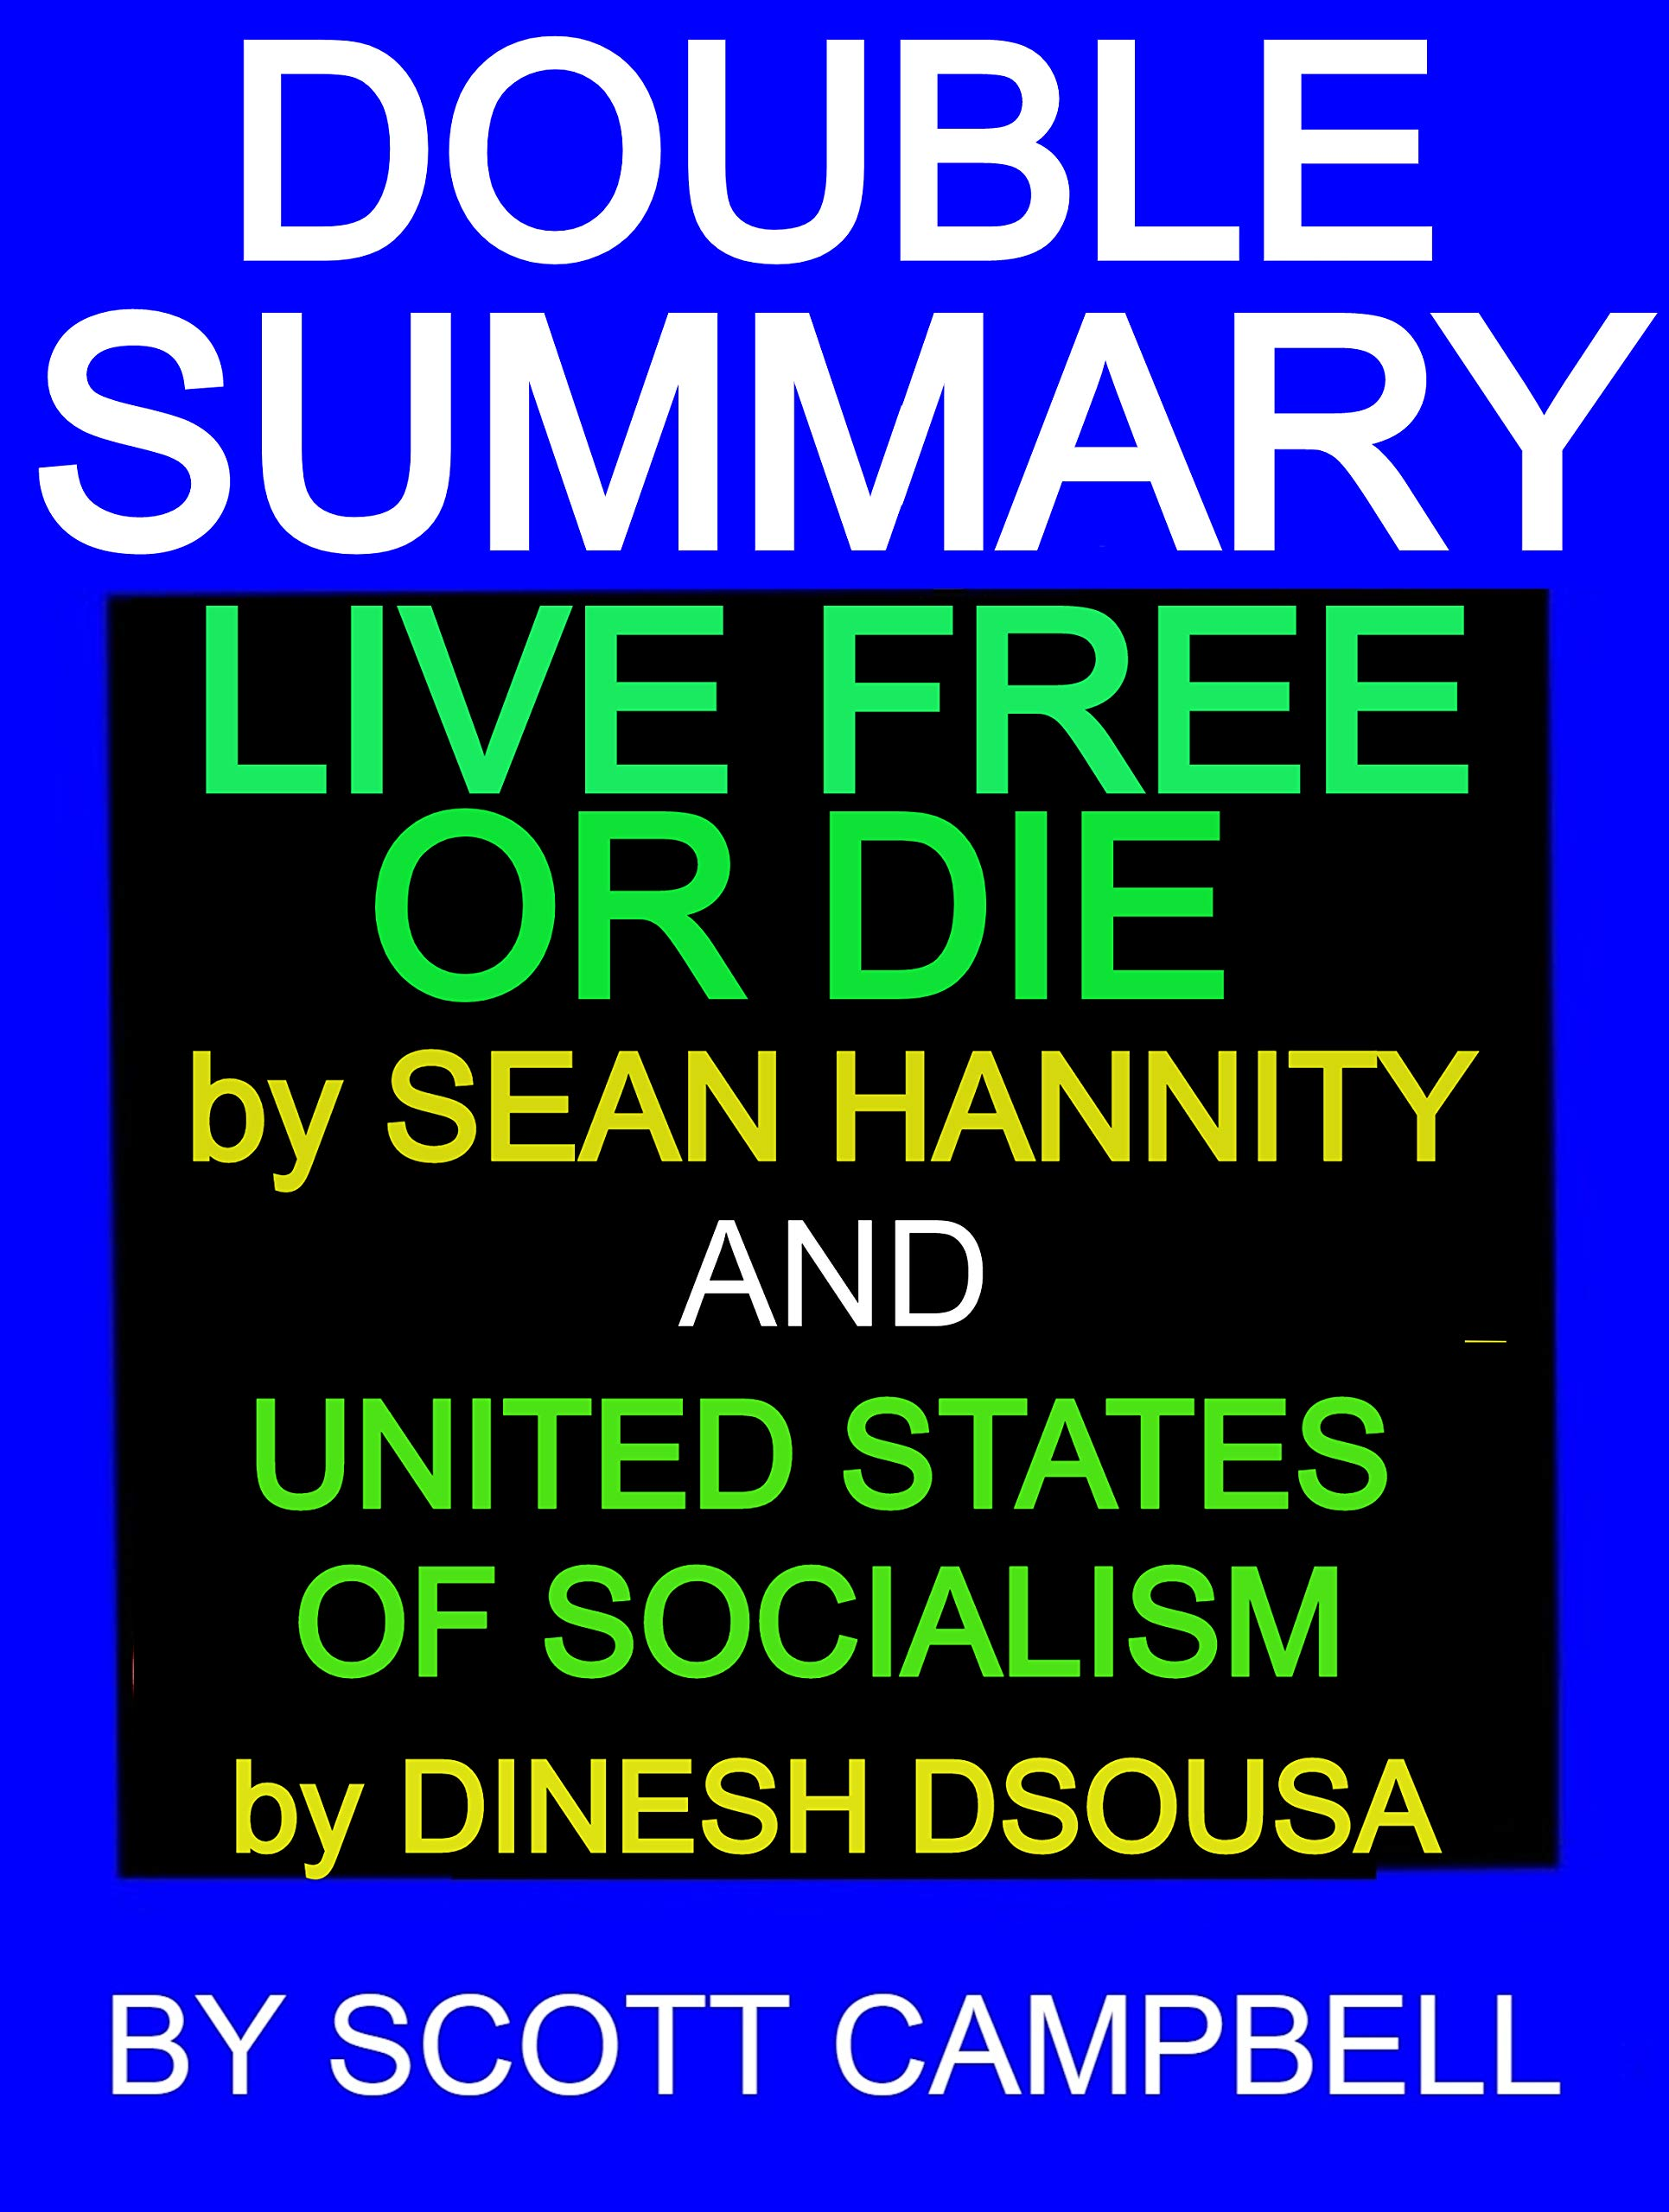 Double Summary of Live Free or Die by Sean Hannity and United States of Socialism by Dinesh D'Sousa (BEST SELLER SUMMARY AND ANALYSIS Book 3)